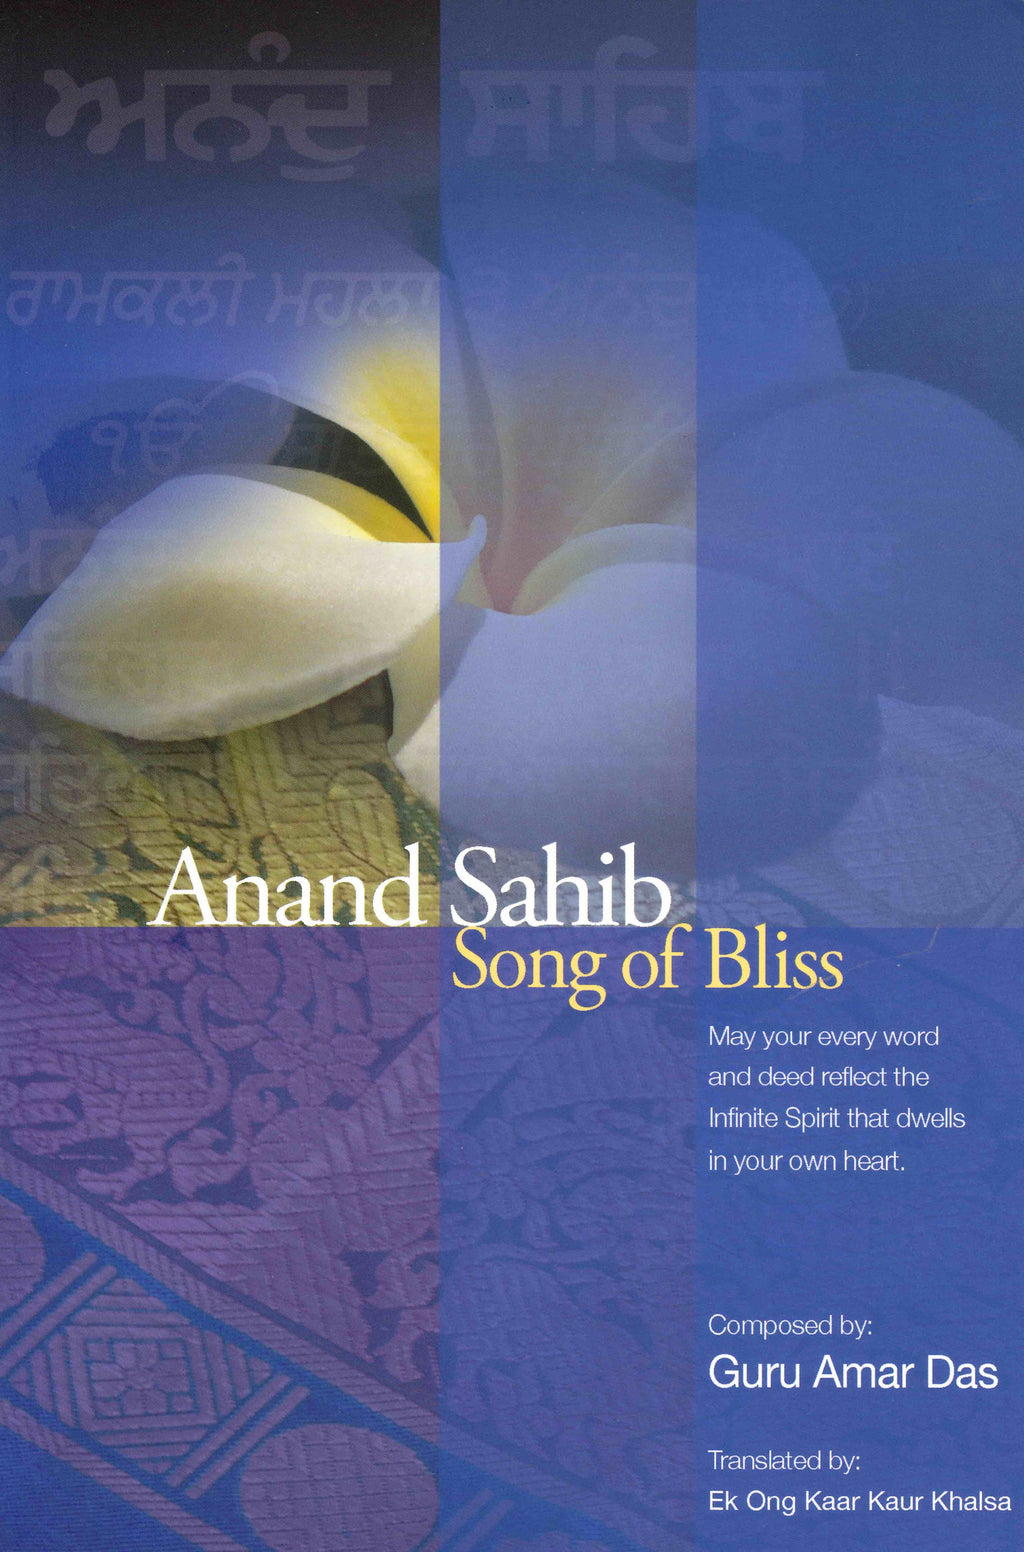 Anand Sahib - Song of Bliss